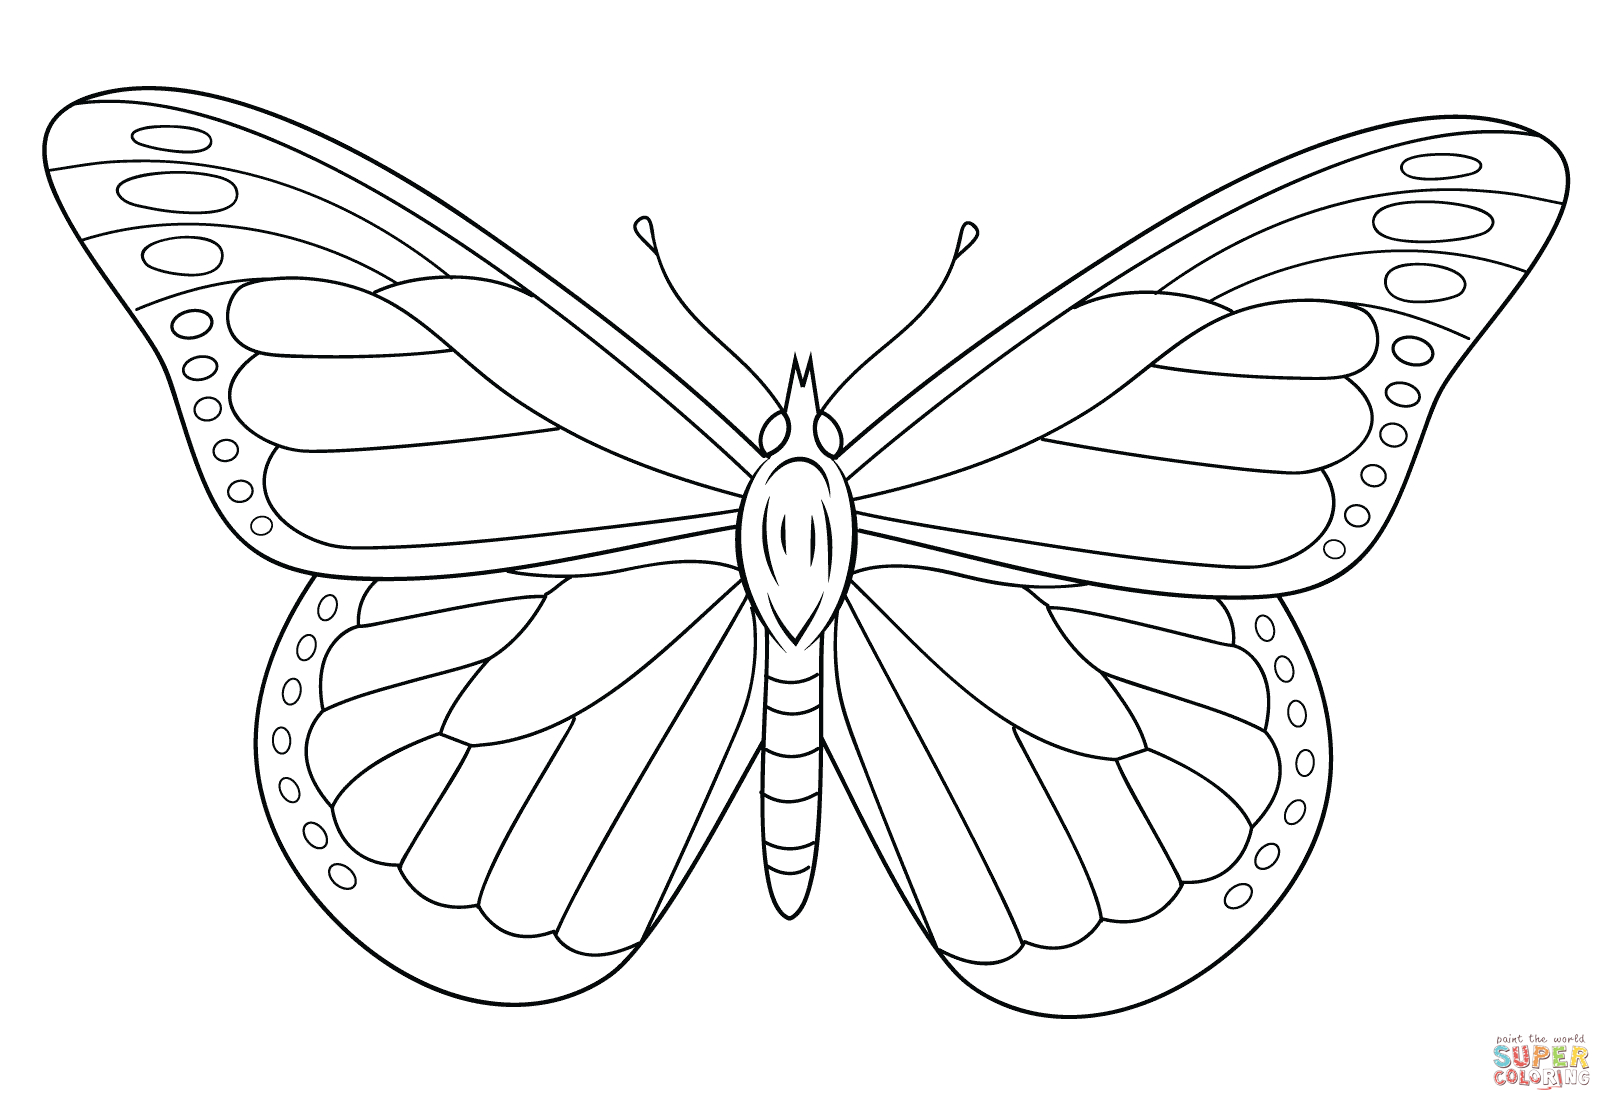 Monarch Butterfly Coloring Page   Free Printable Coloring Pages - Free Printable Butterfly Pictures